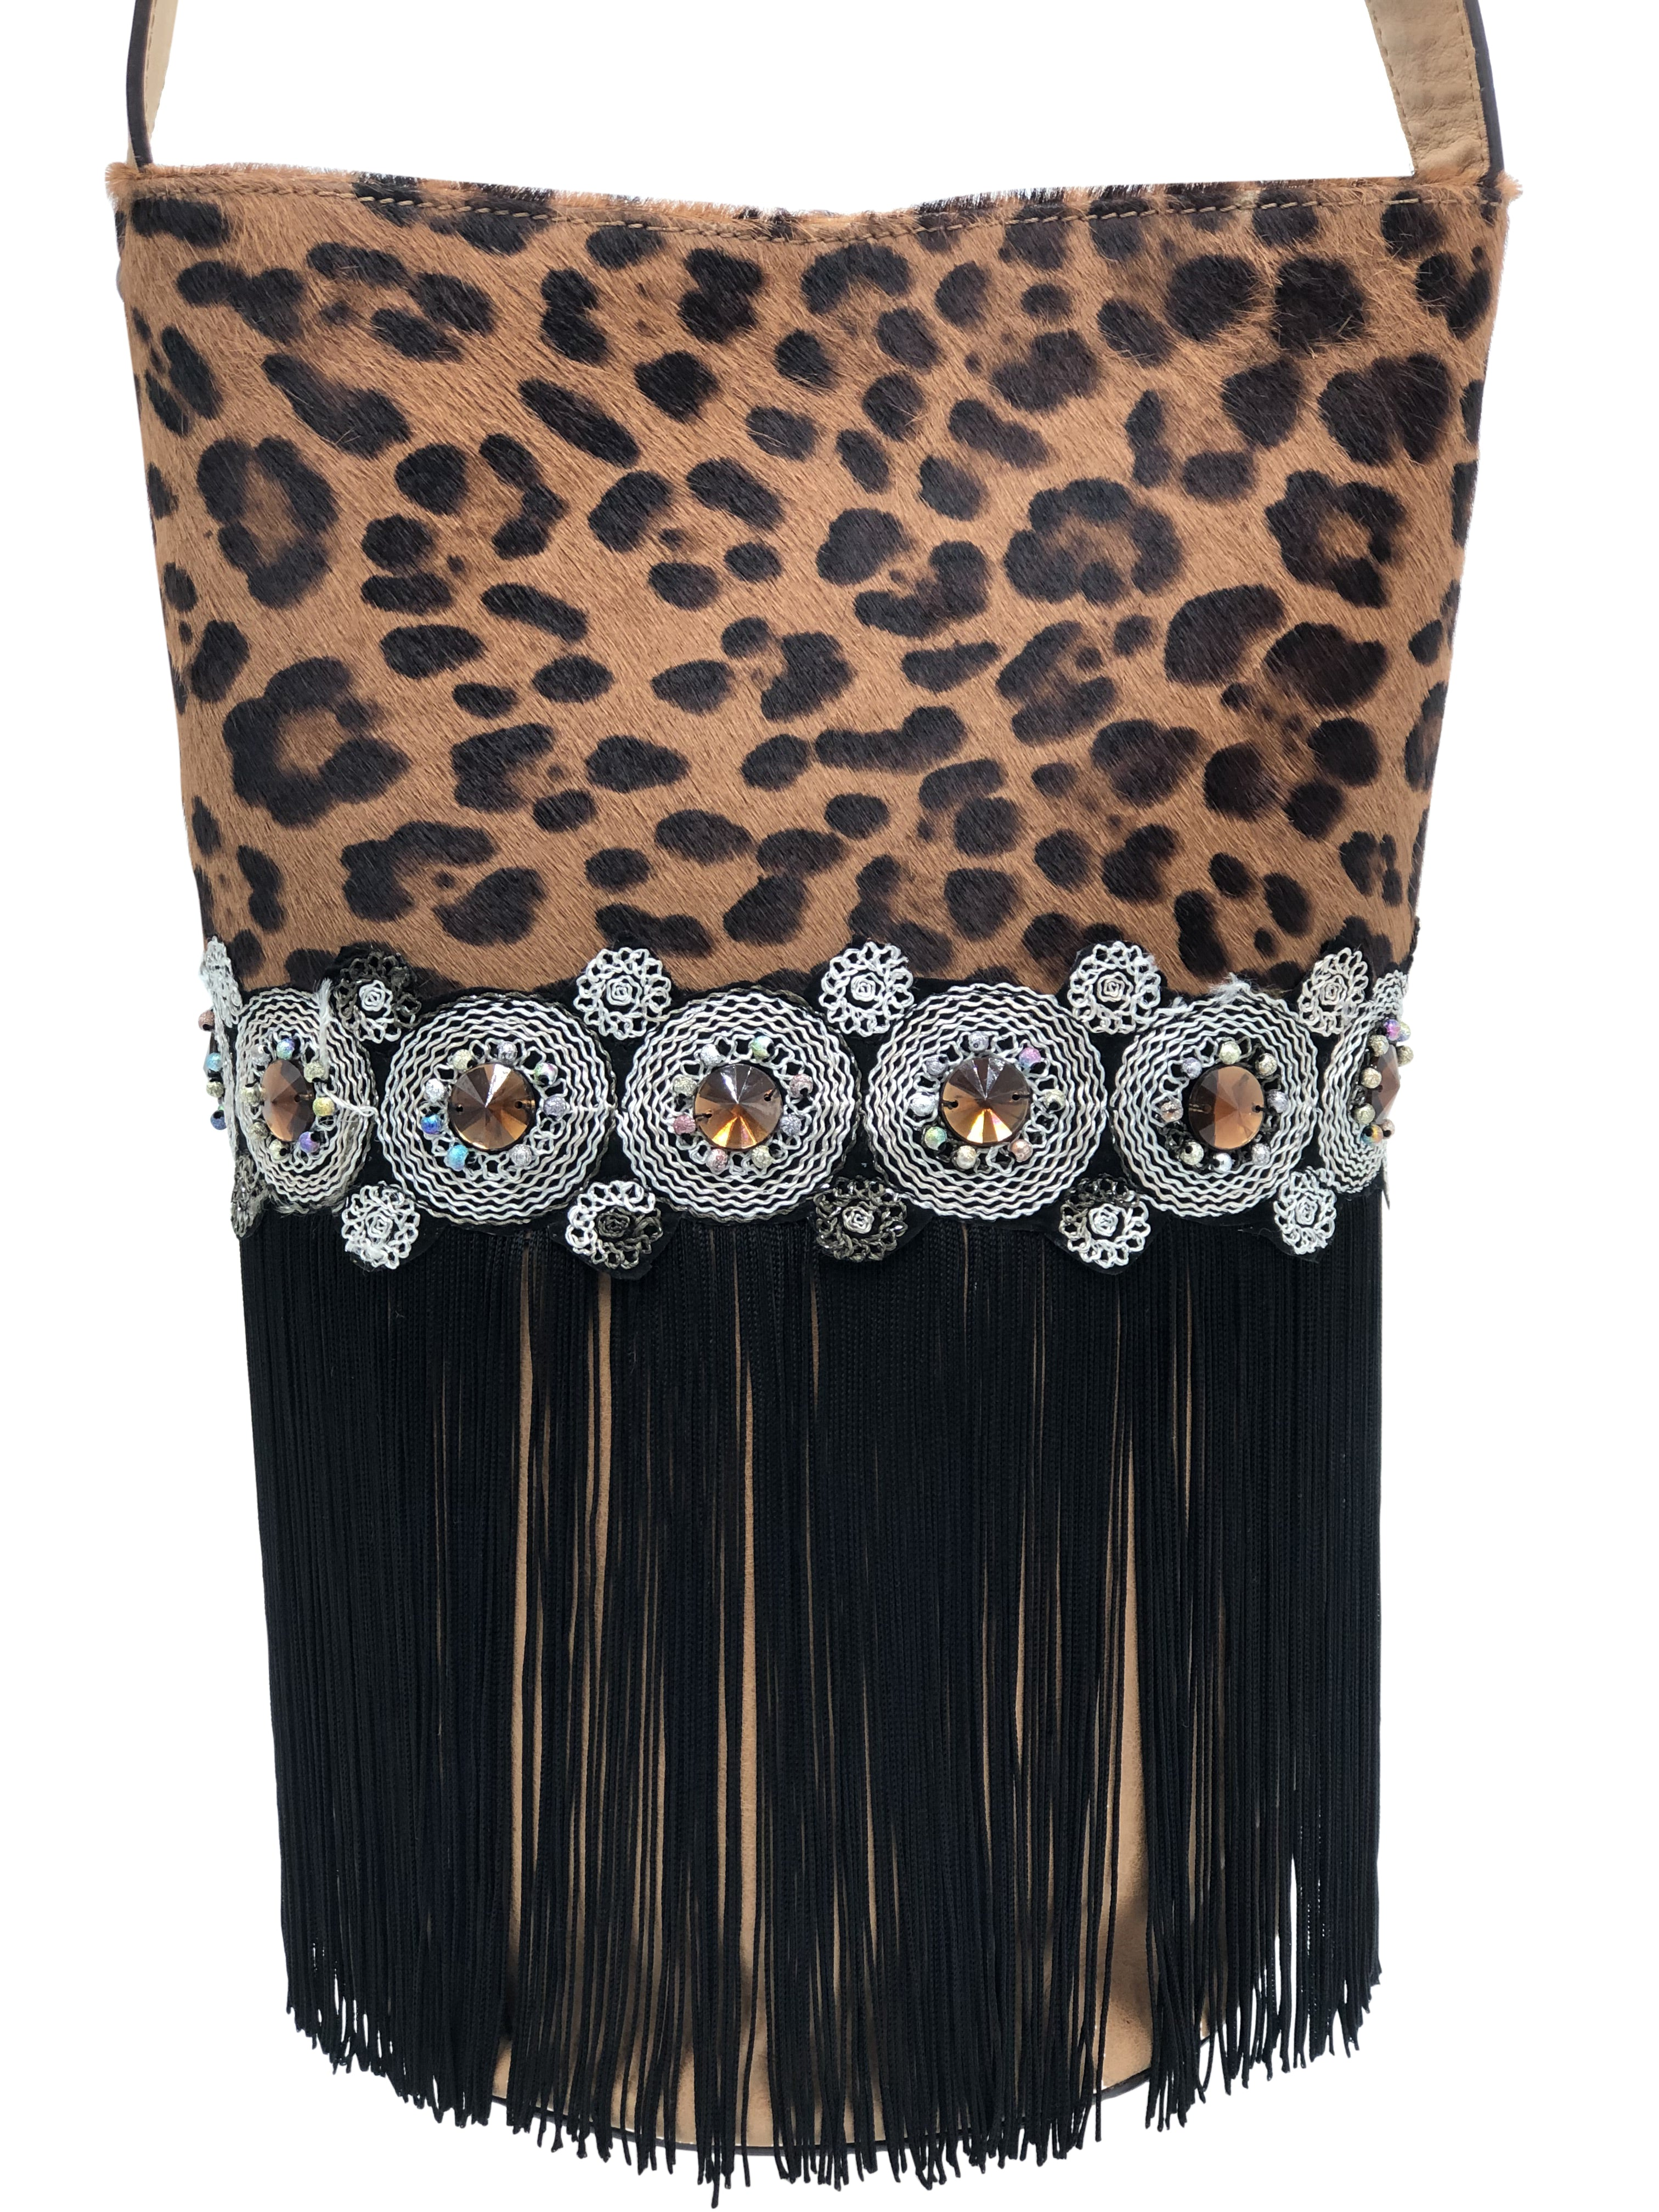 Leopard pattern haircalf & light brown leather  bag with stones and fringes